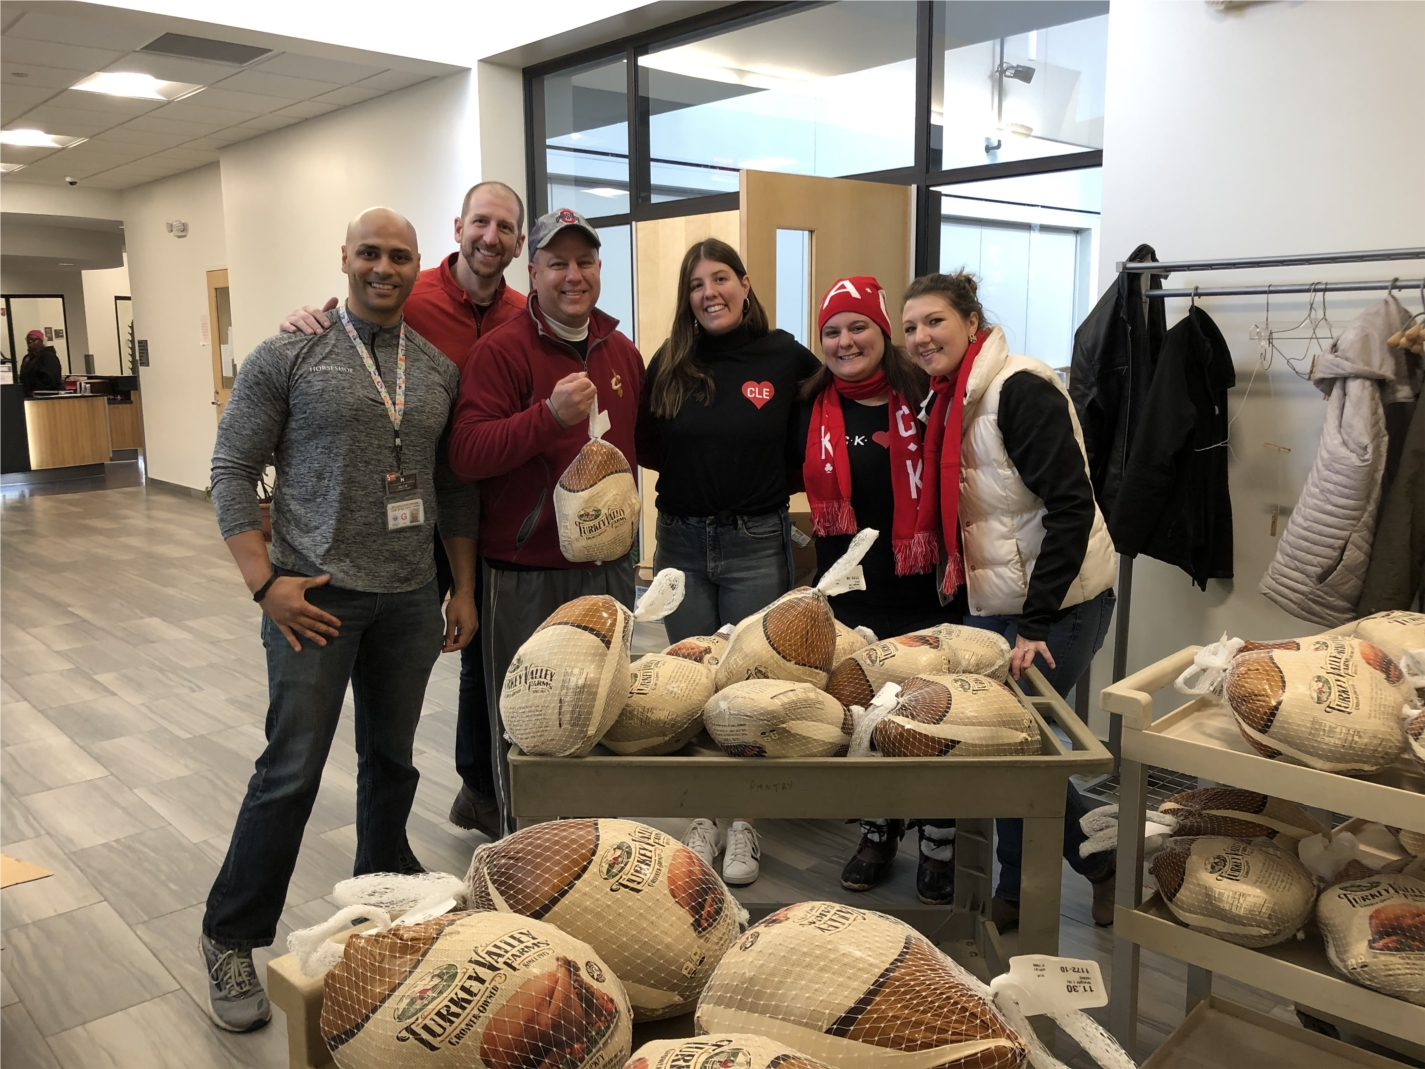 JACK team members delivering over 6,300 lbs of turkey to 13 area local food pantries ahead of the Thanksgiving holiday.